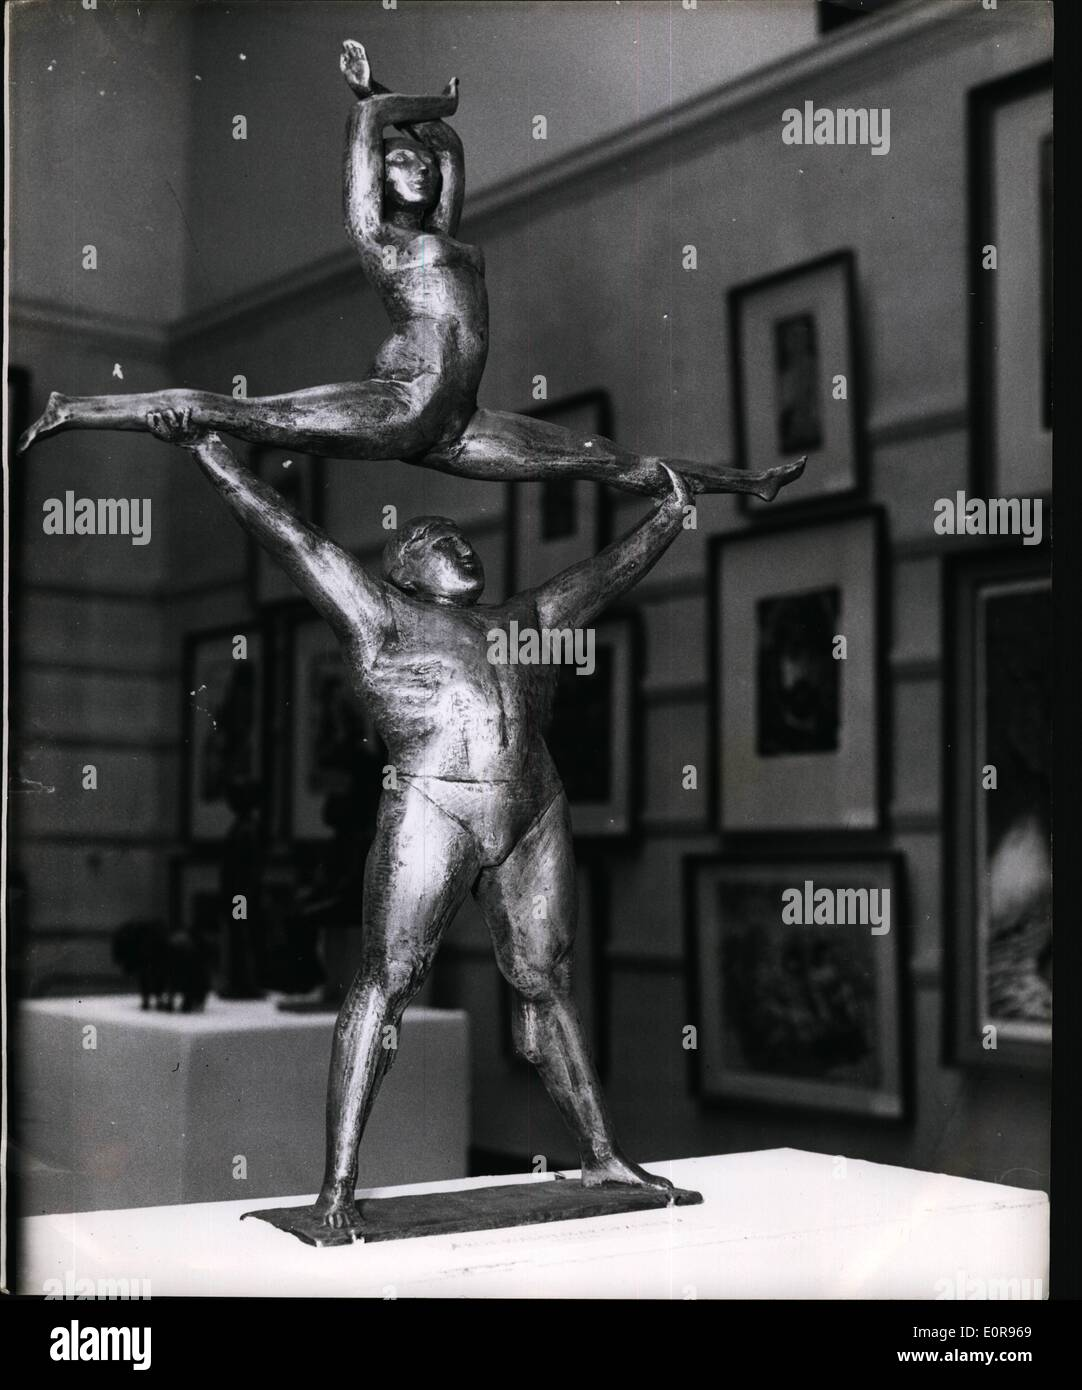 Oct. 10, 1958 - Exhibition of German Graphic Art in London. Artistes in Aluminum: For the first time in this country Stock Photo